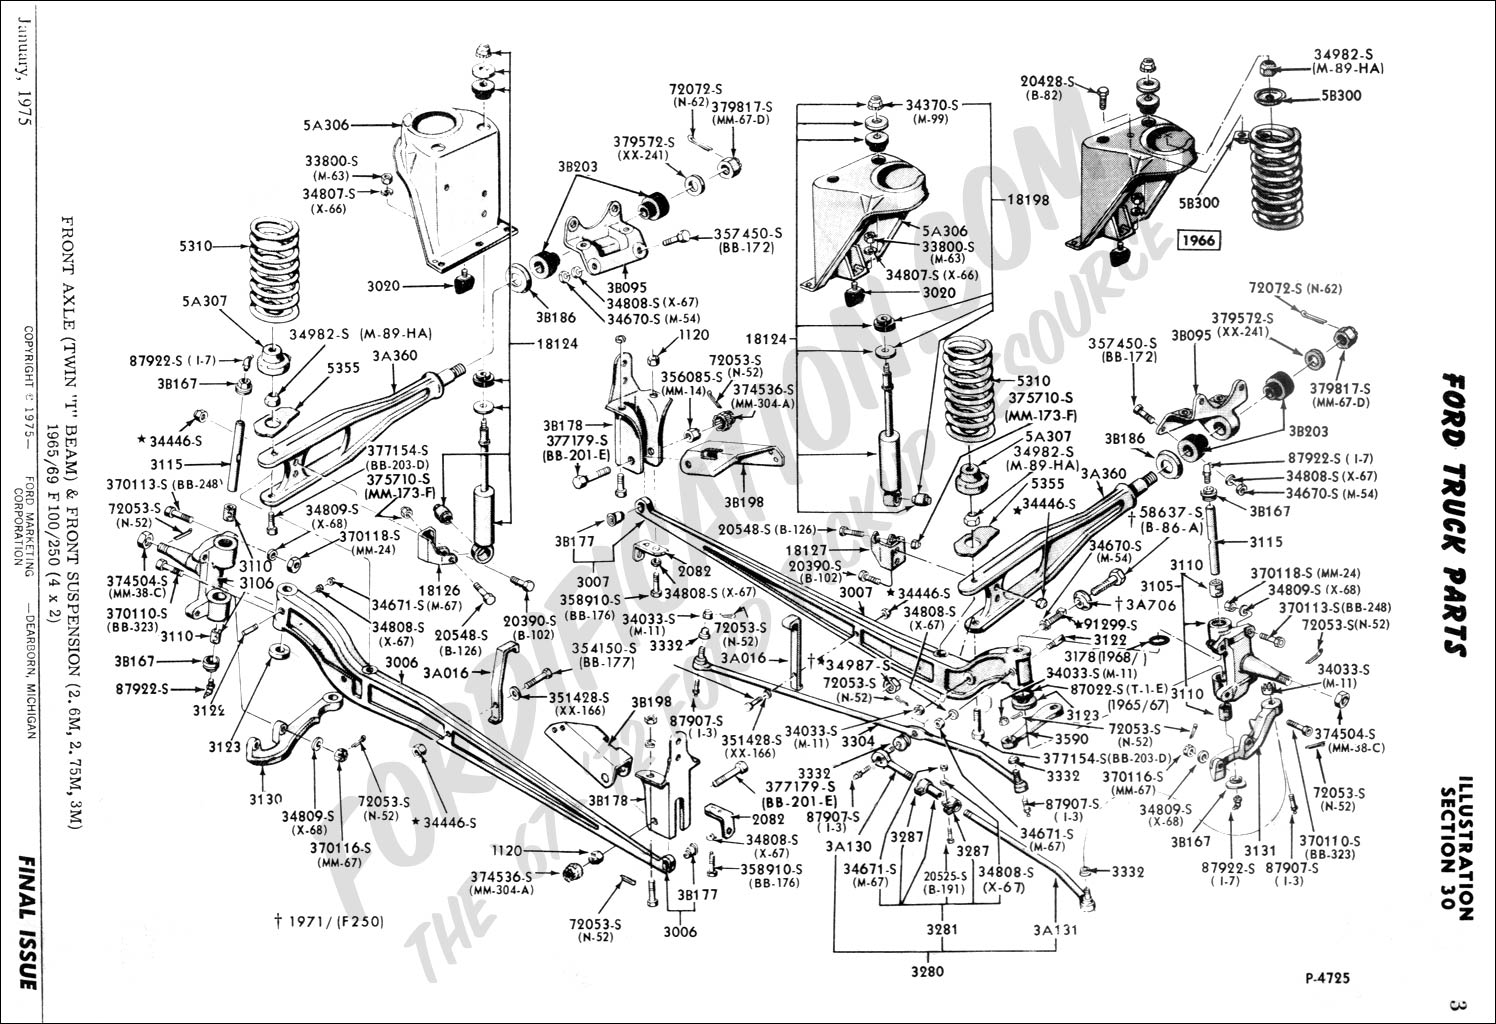 gmc truck front suspension diagram  gmc  free engine image for user manual download